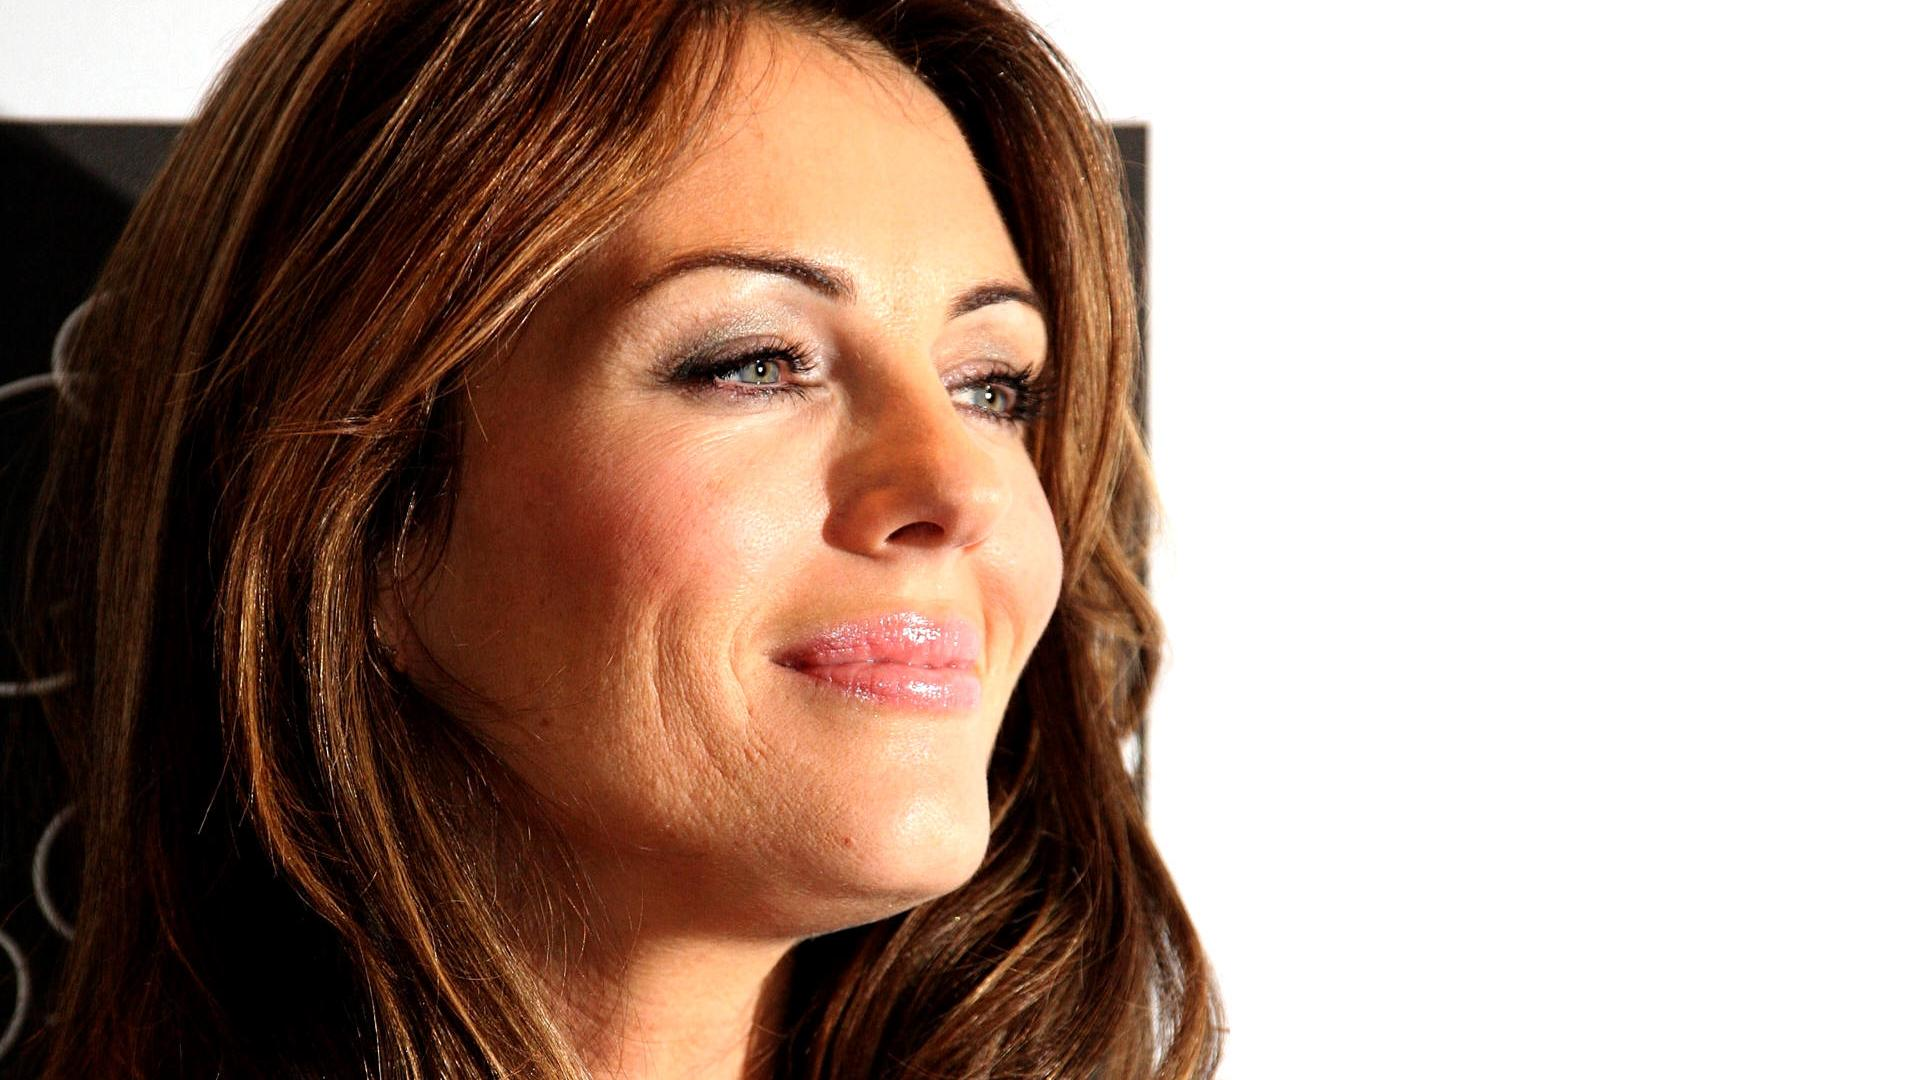 Elizabeth Hurley Smiling HD wallpapers Wallpaper